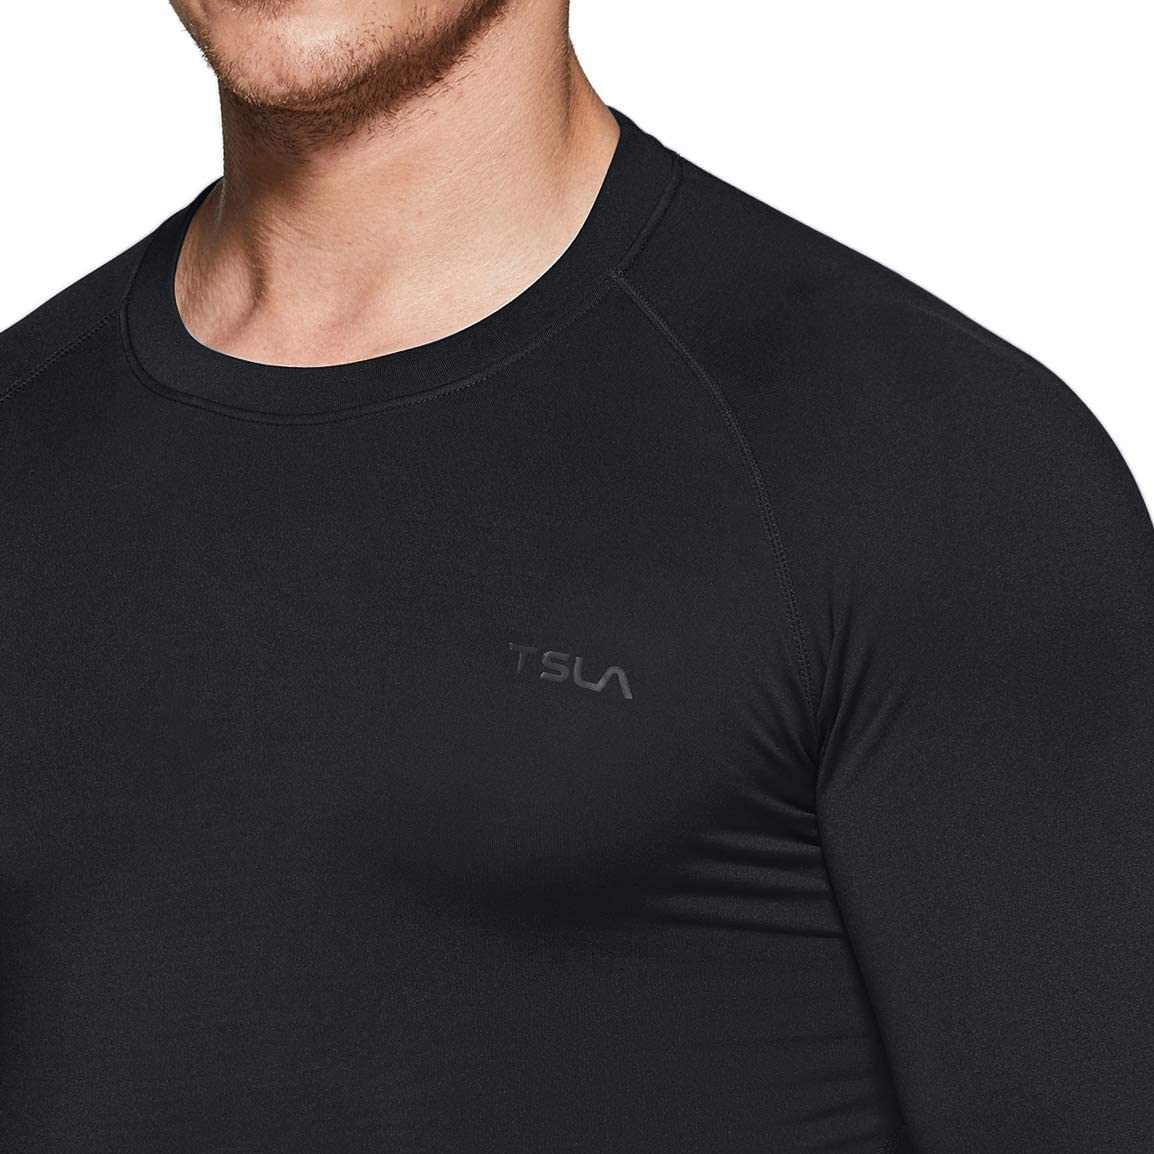 TSLA 1 or 2 Pack Mens Thermal Long Sleeve Compression Shirts Athletic Base Layer Top Winter Gear Running T-Shirt